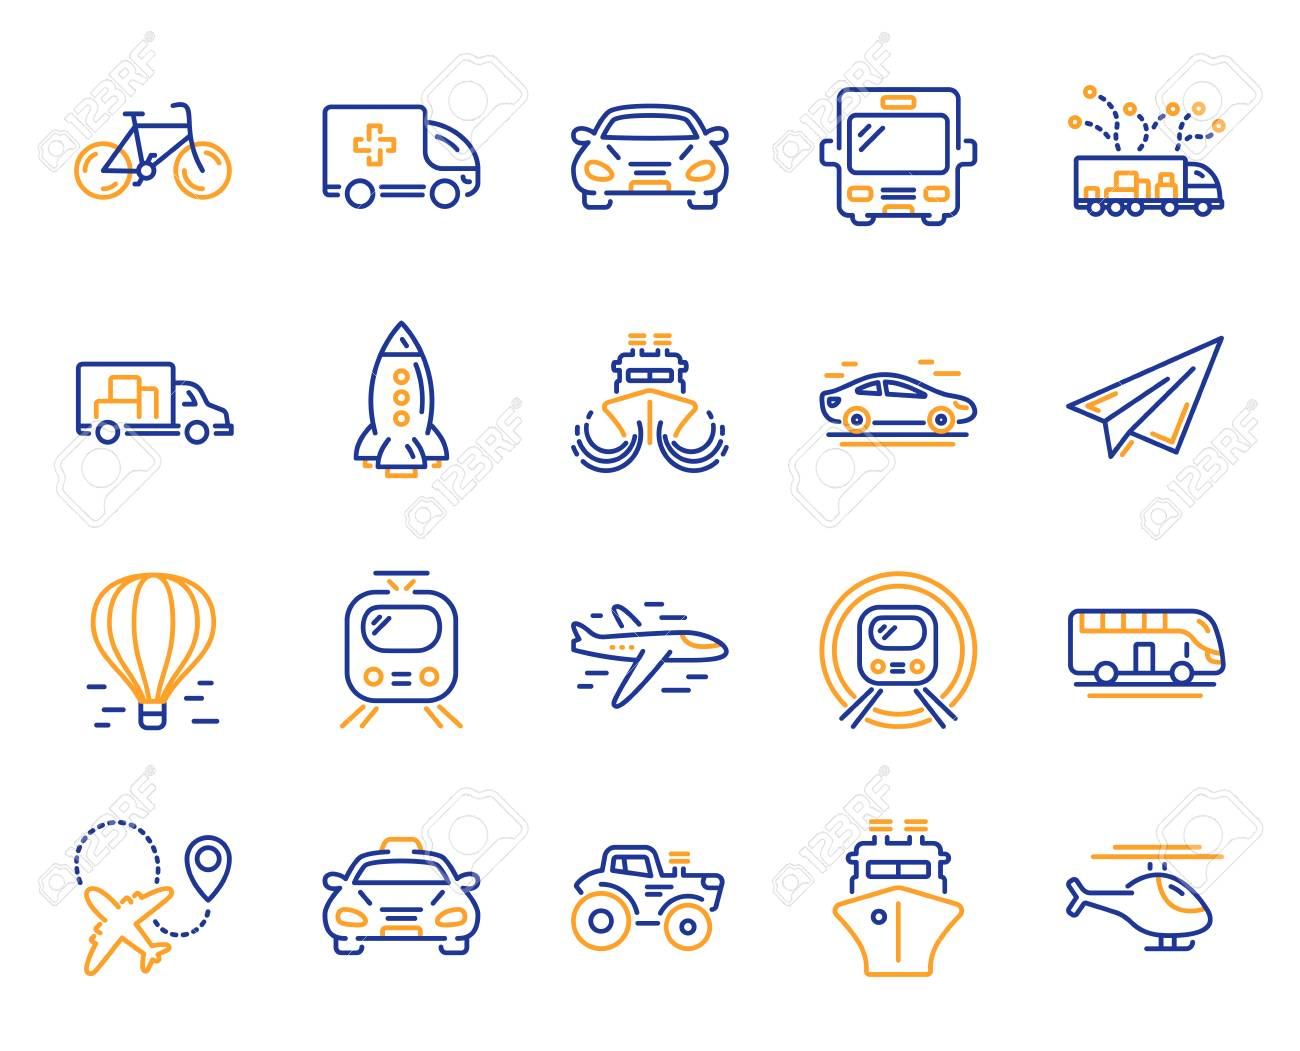 Transport line icons. Taxi, Helicopter and subway train icons. Truck car, Tram and Air balloon transport. Bike, Airport airplane and Ship, subway. Travel bus, ambulance car, paper airplane. Vector - 115605485